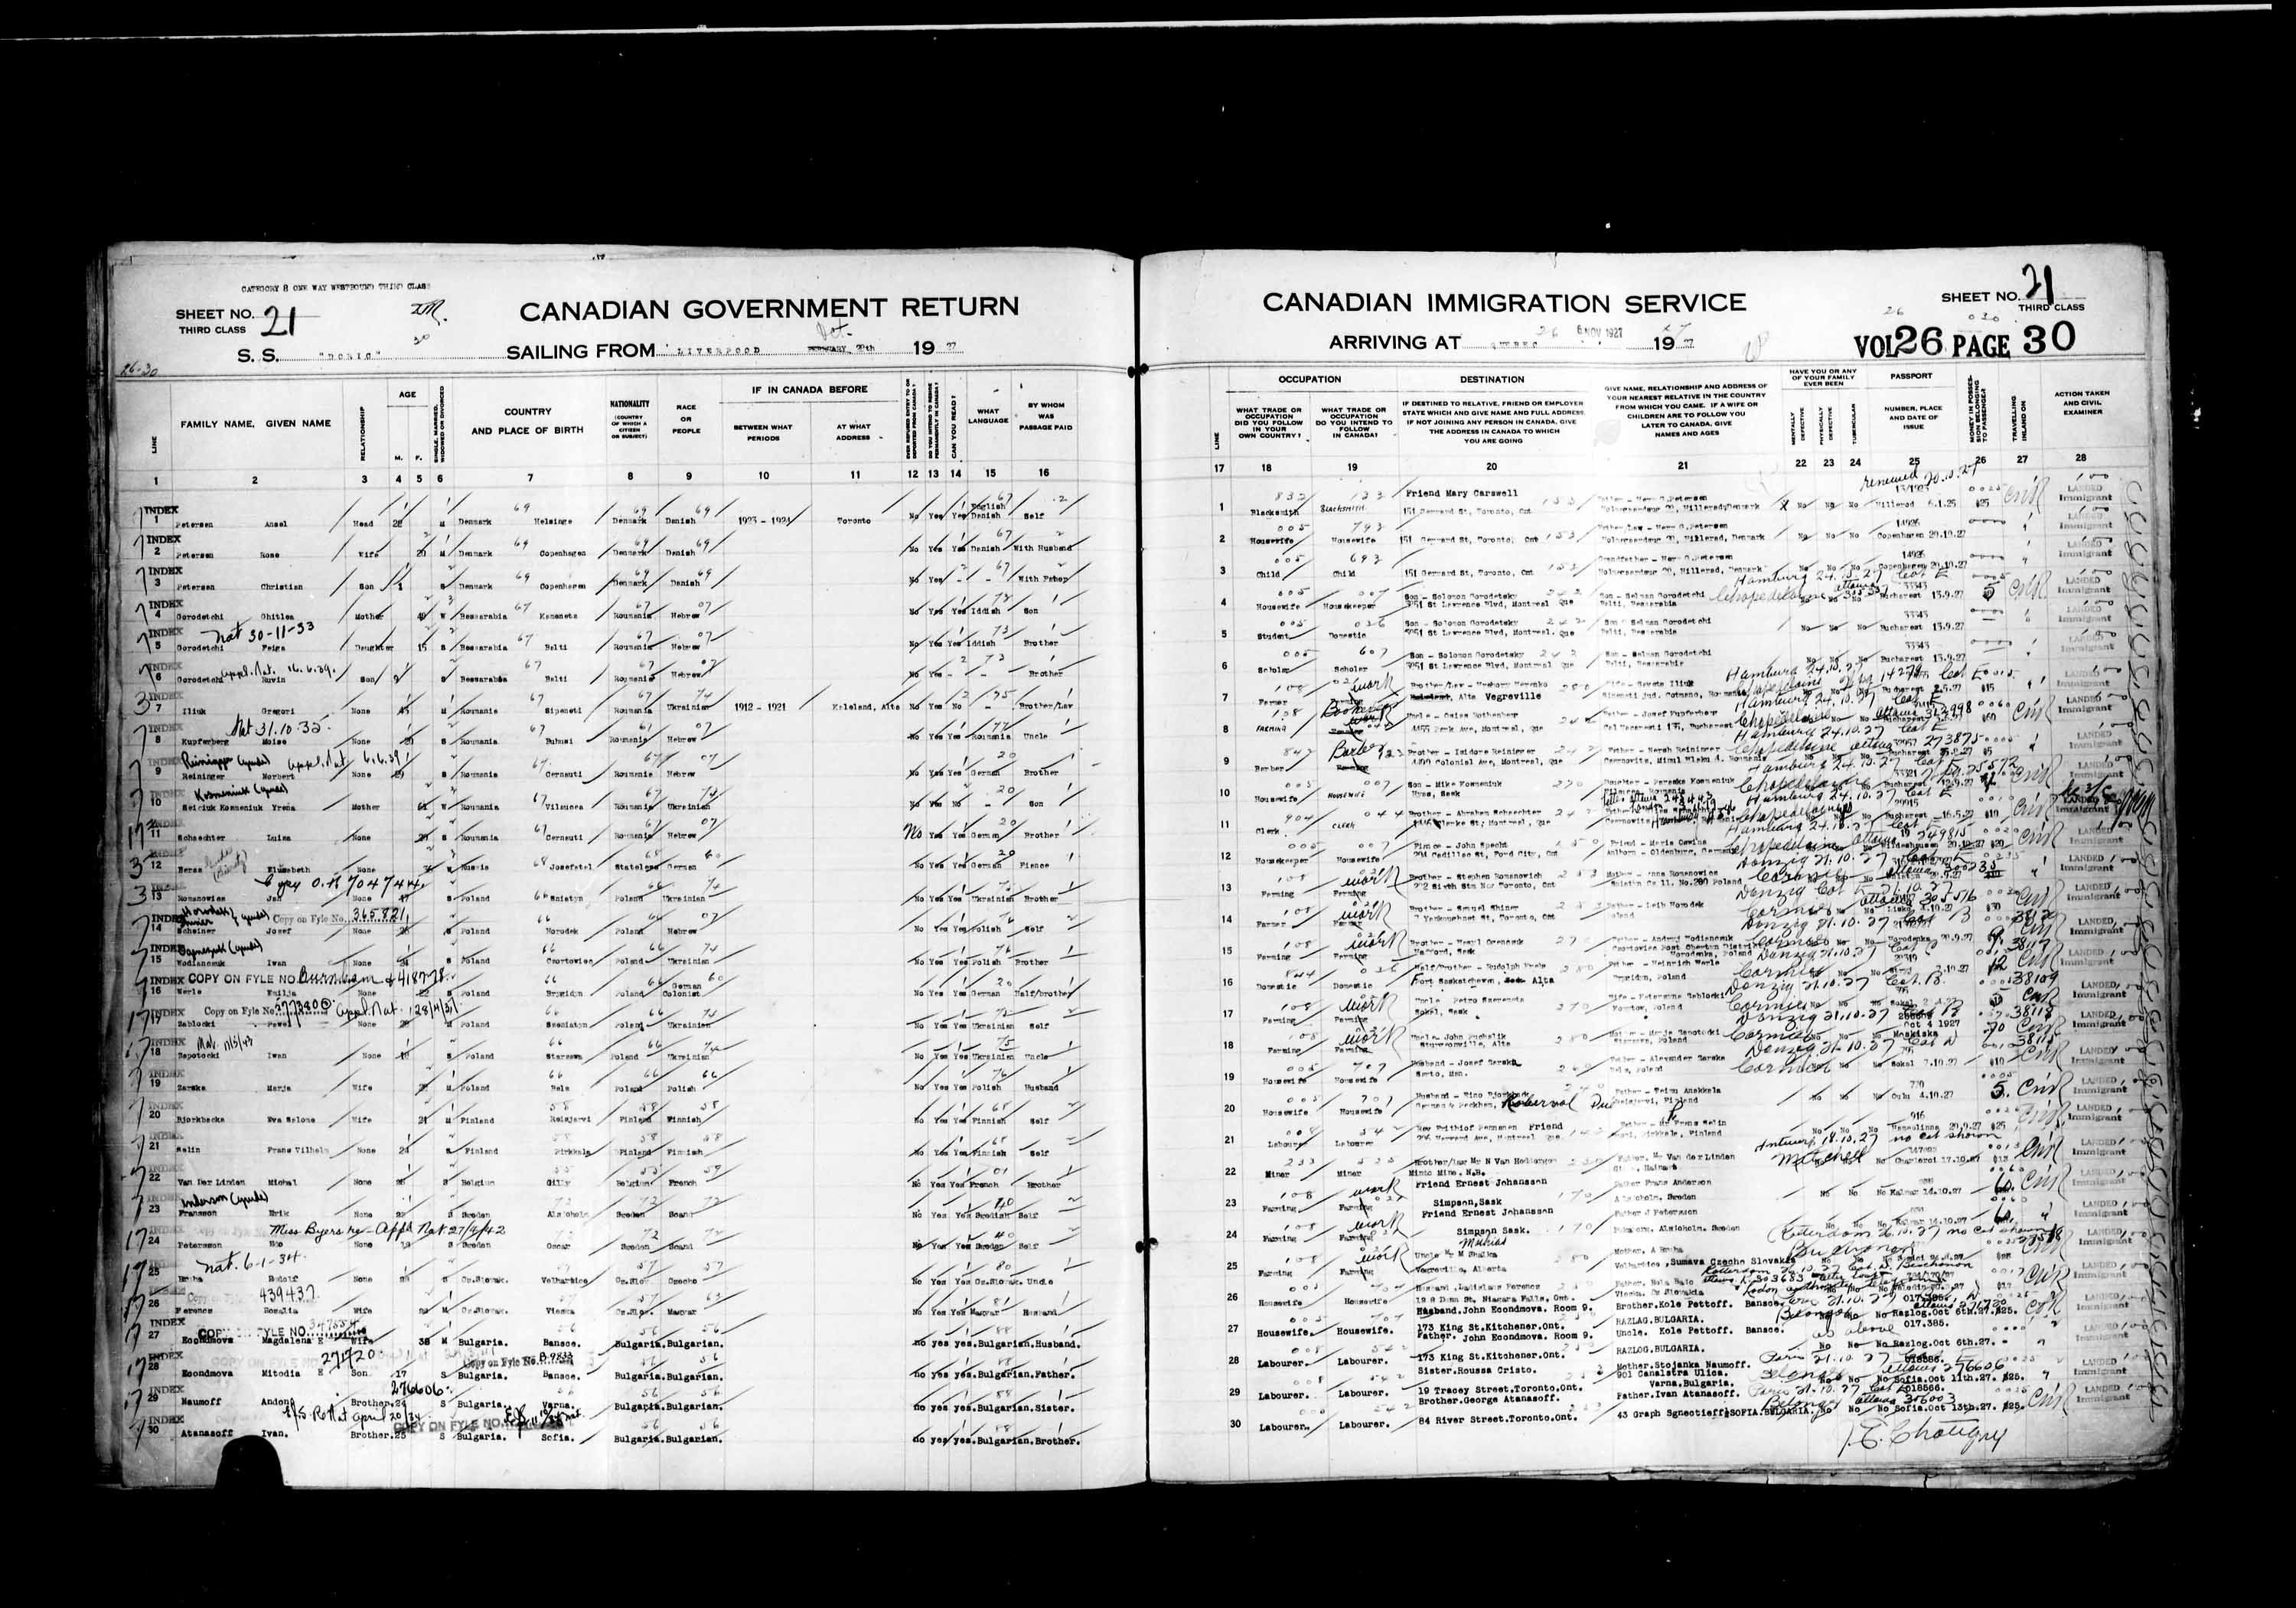 Title: Passenger Lists: Quebec City (1925-1935) - Mikan Number: 134839 - Microform: t-14740